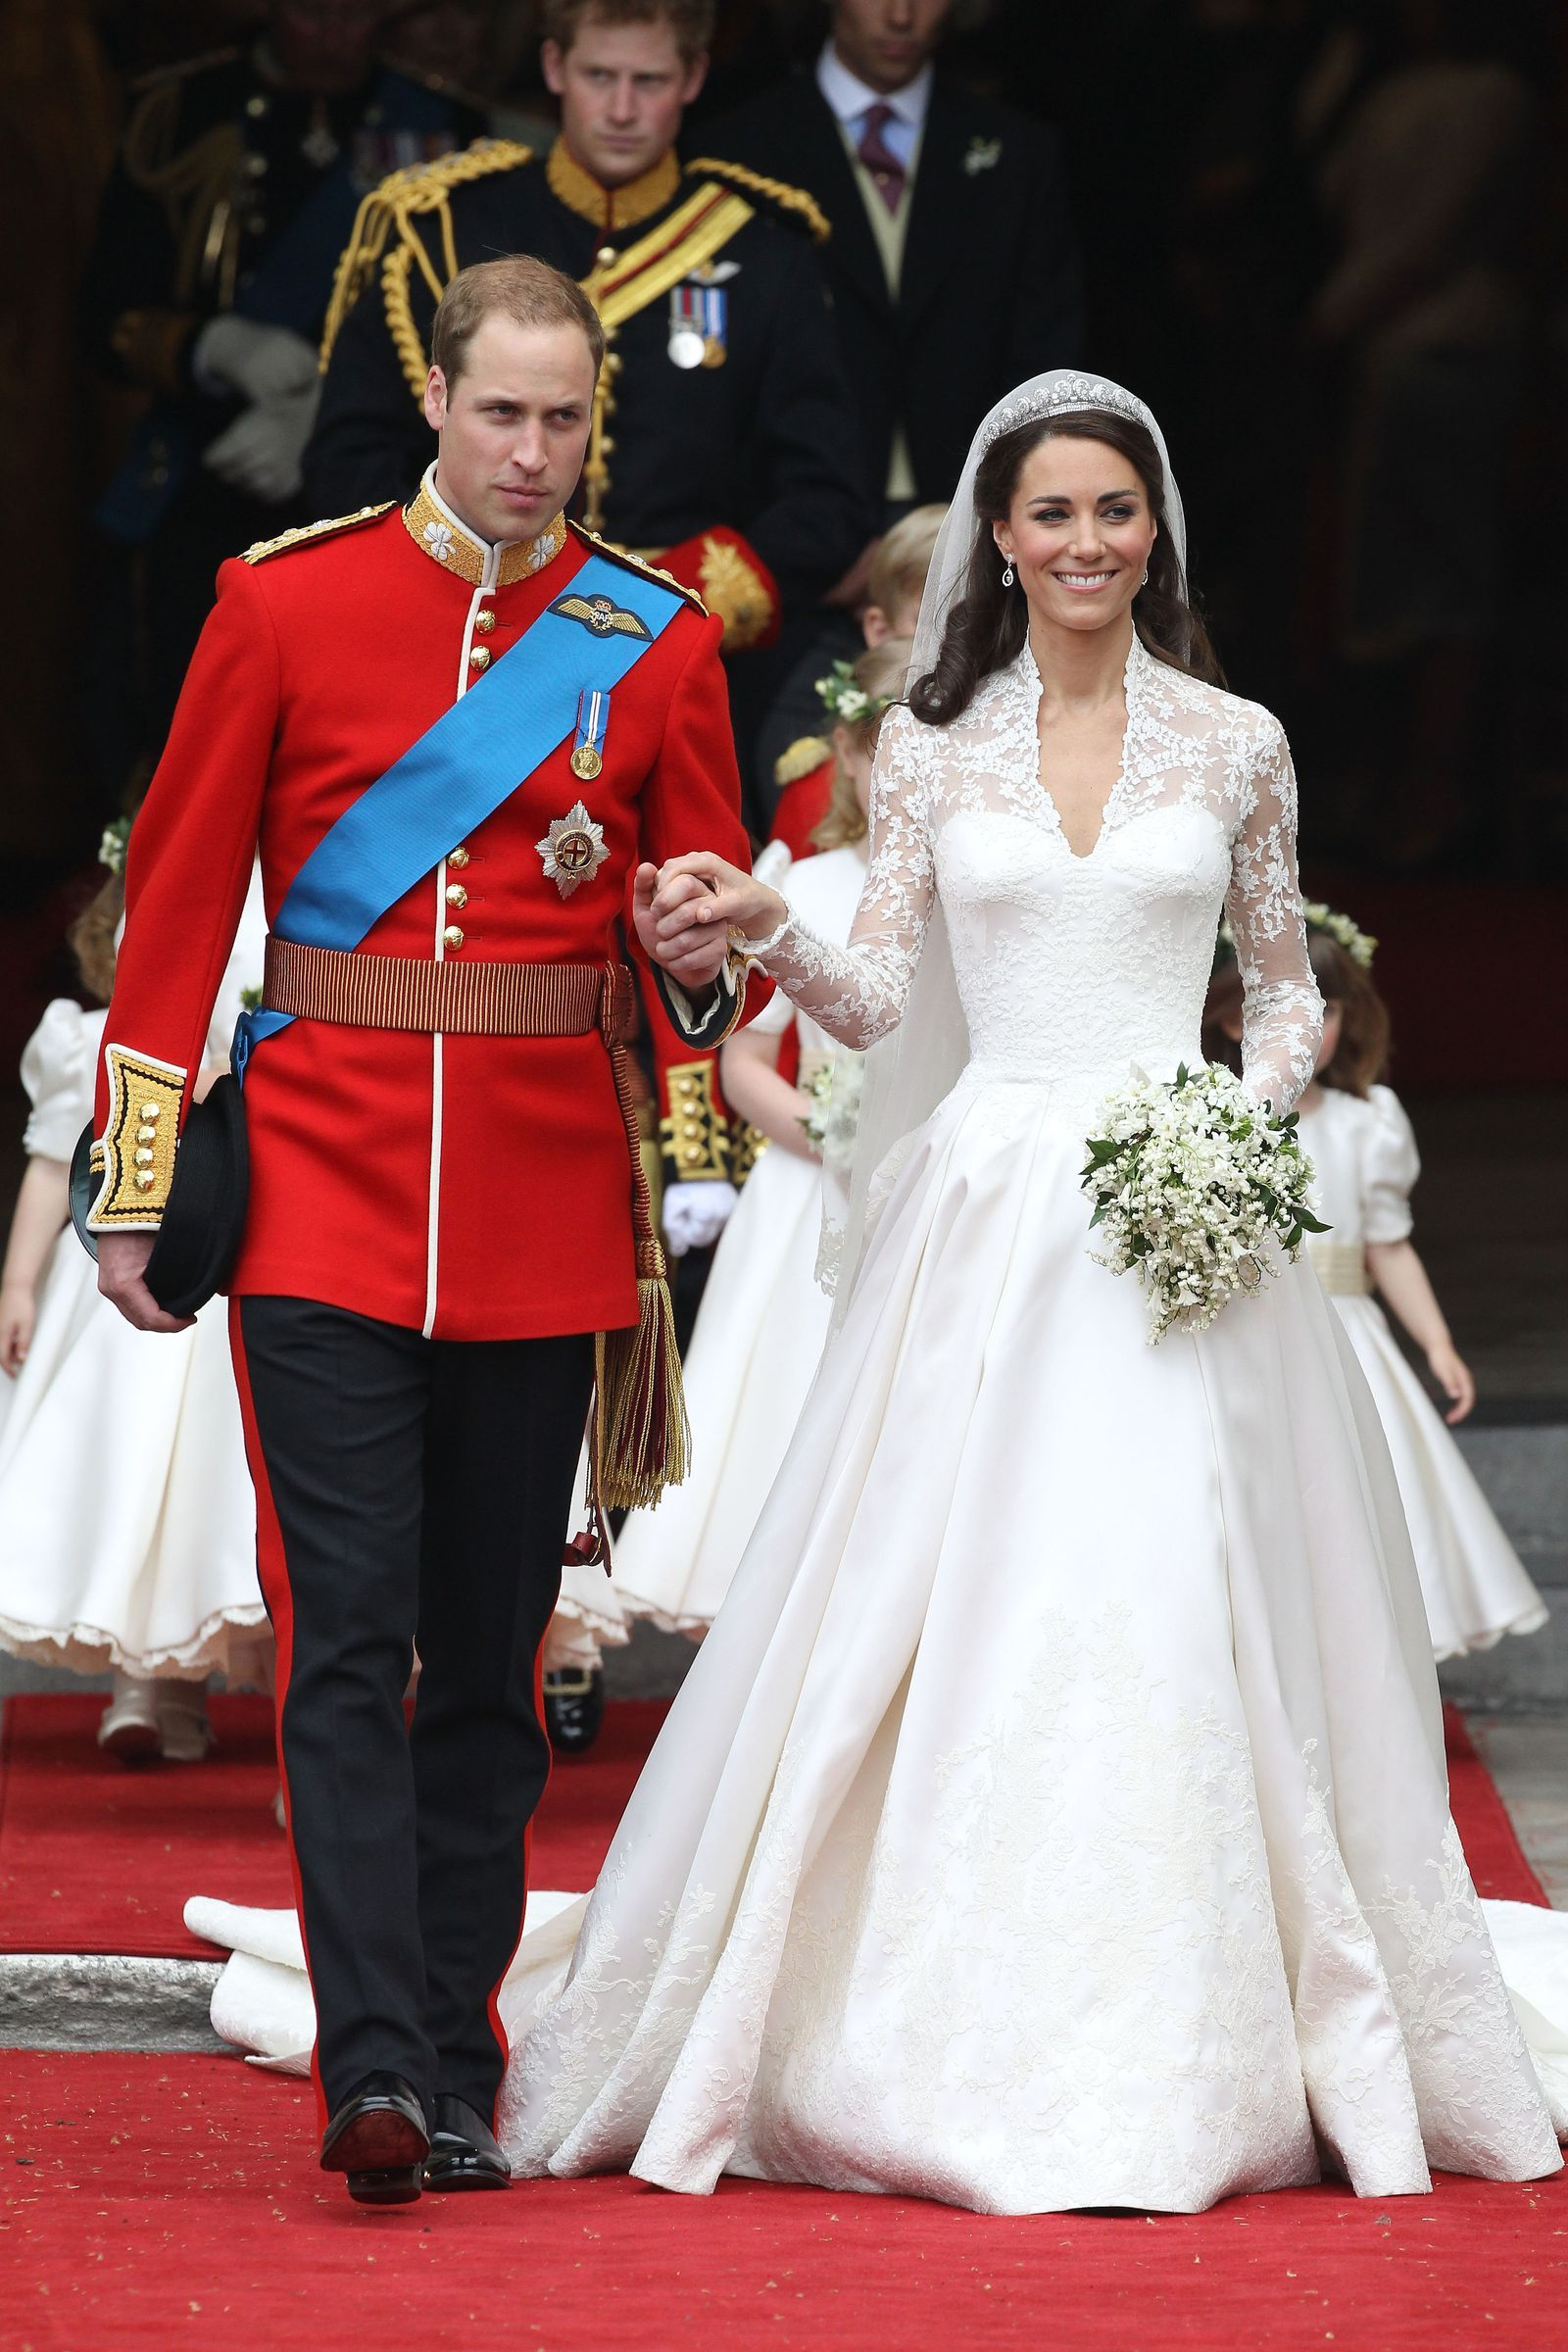 The most expensive wedding dress   of the Most Expensive Celebrity Wedding Dresses Ever  Kate